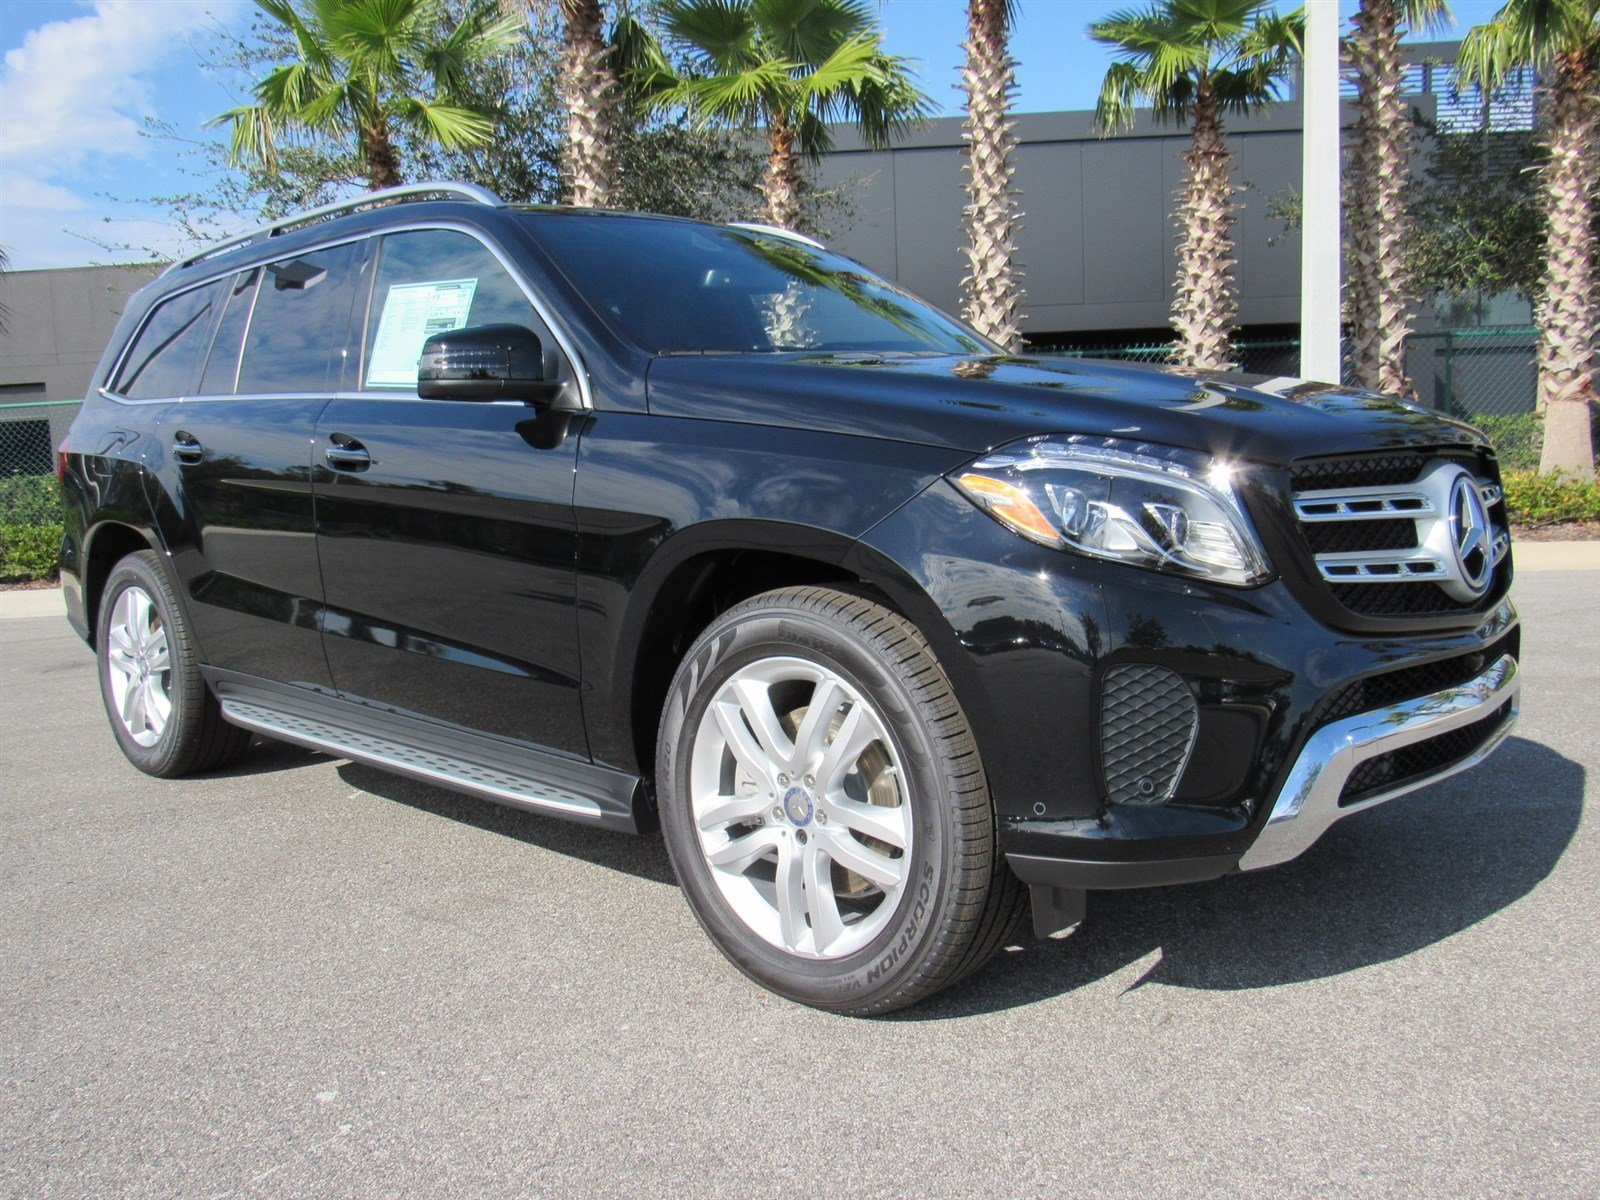 New 2017 mercedes benz gls gls 450 4matic sport utility for 2017 mercedes benz gls 450